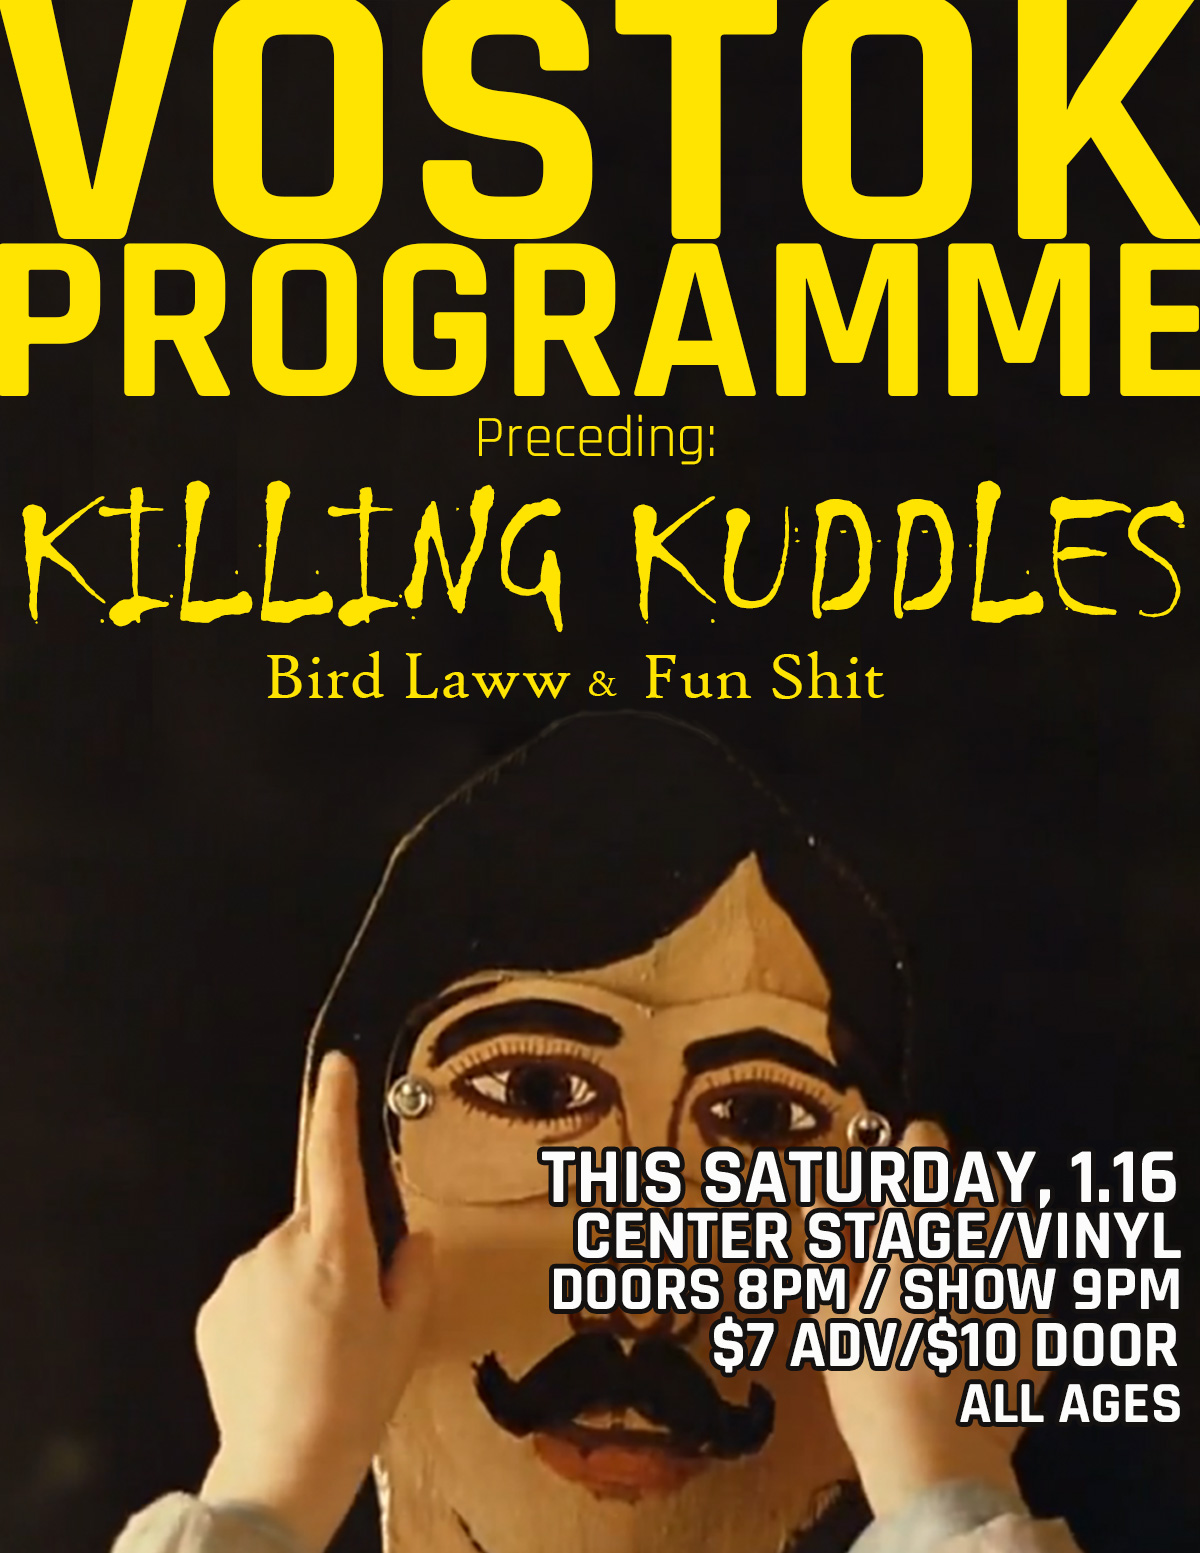 Sat. 1/16 w/ Vostok Programme, Killing Kuddles, Bird Laww and Fun Shit